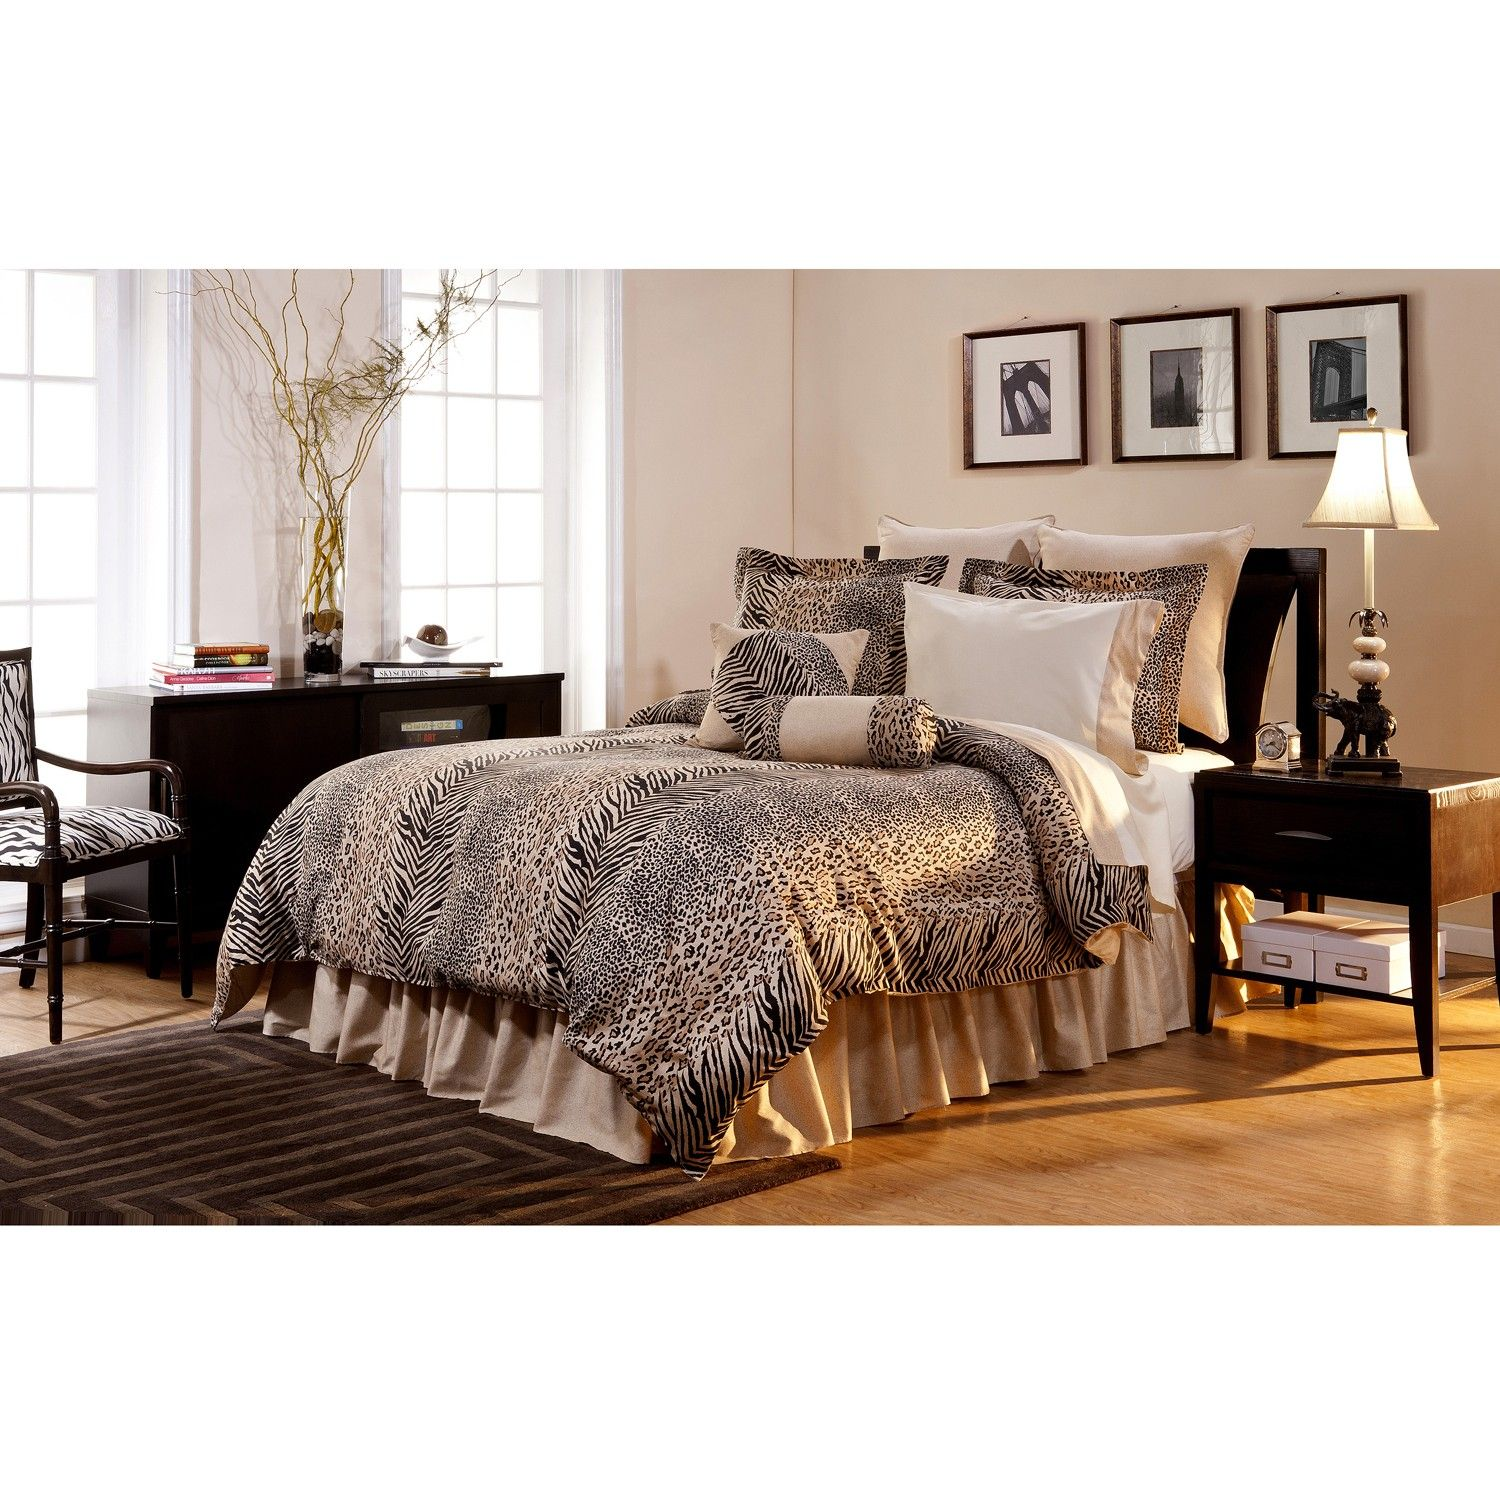 Urban Safari 3 piece King size Duvet Cover Set